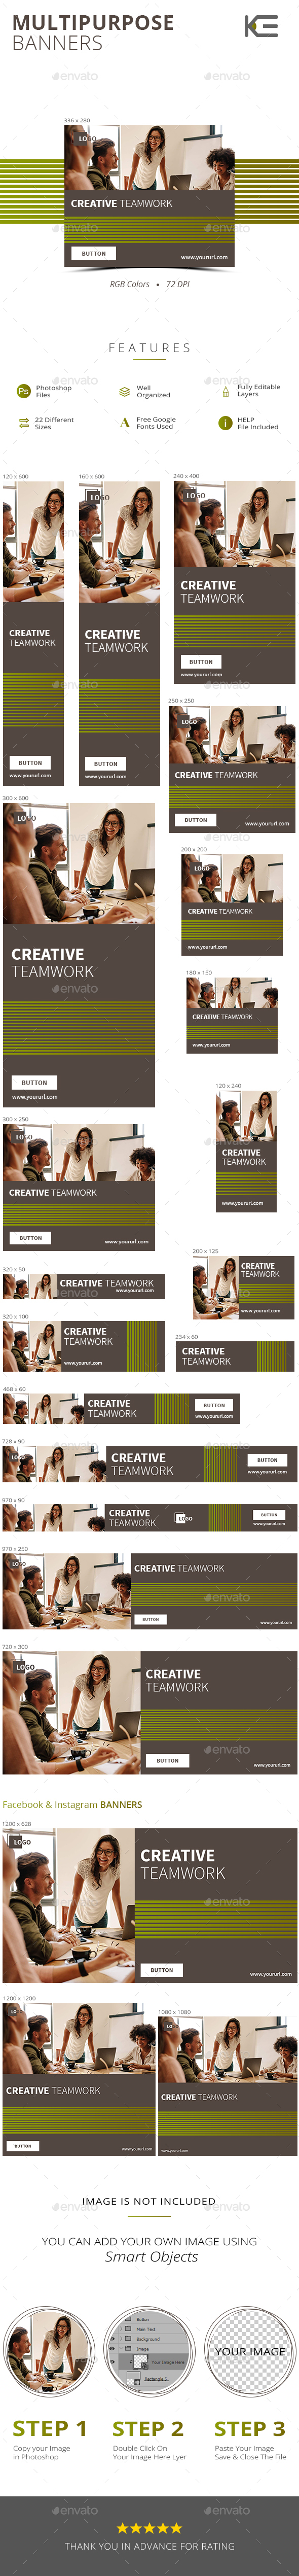 GraphicRiver Multipurpose Banners 21190883